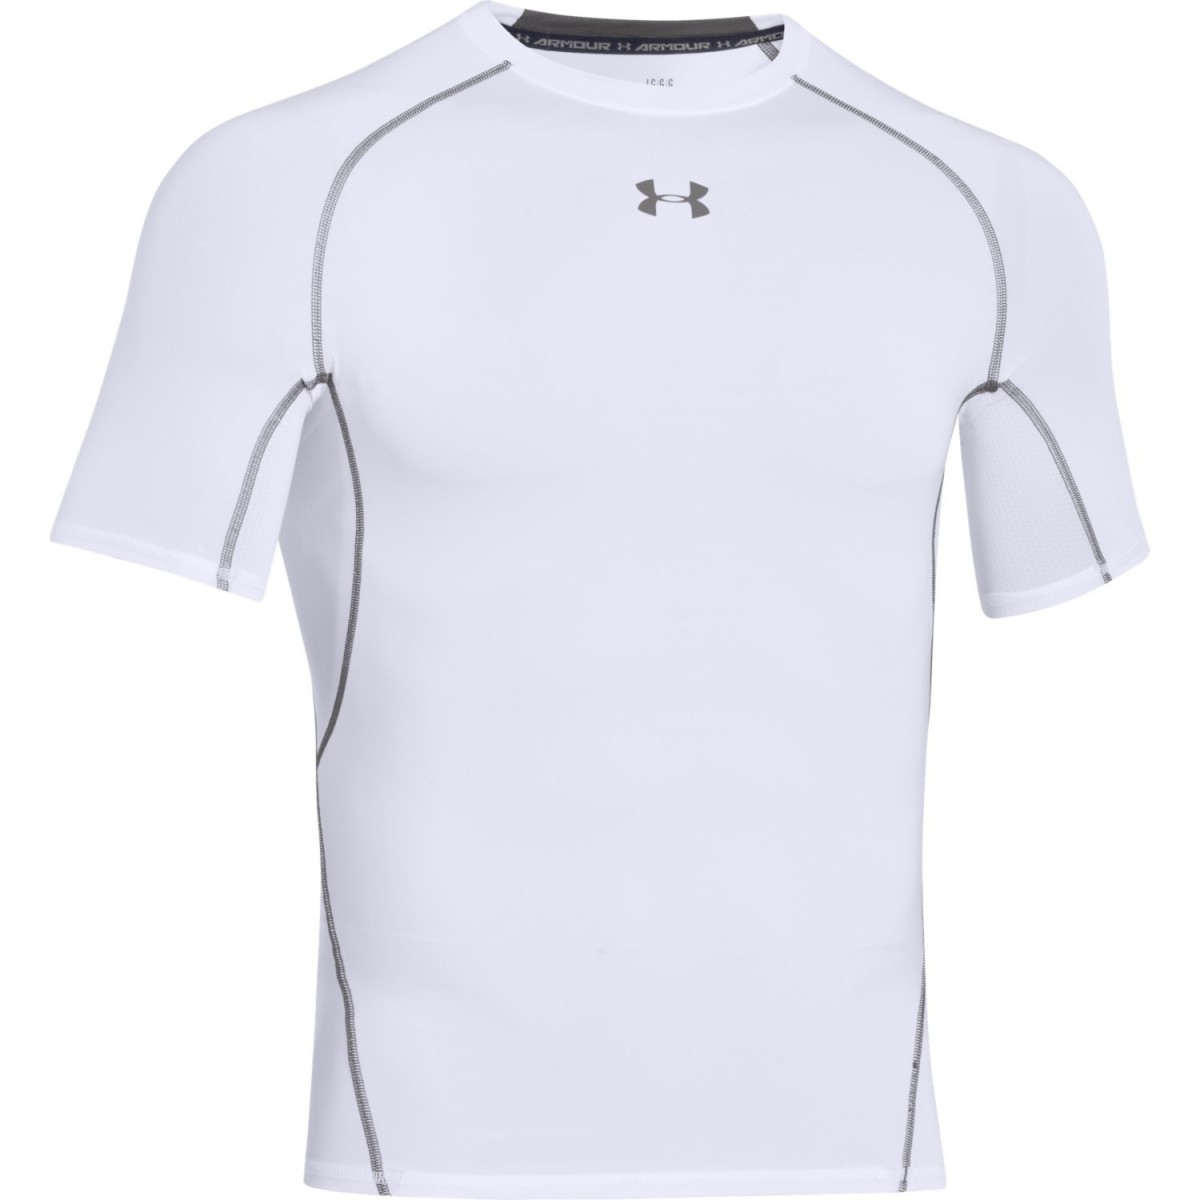 Under Armour T-Shirt Heatgear Bianca Uomo